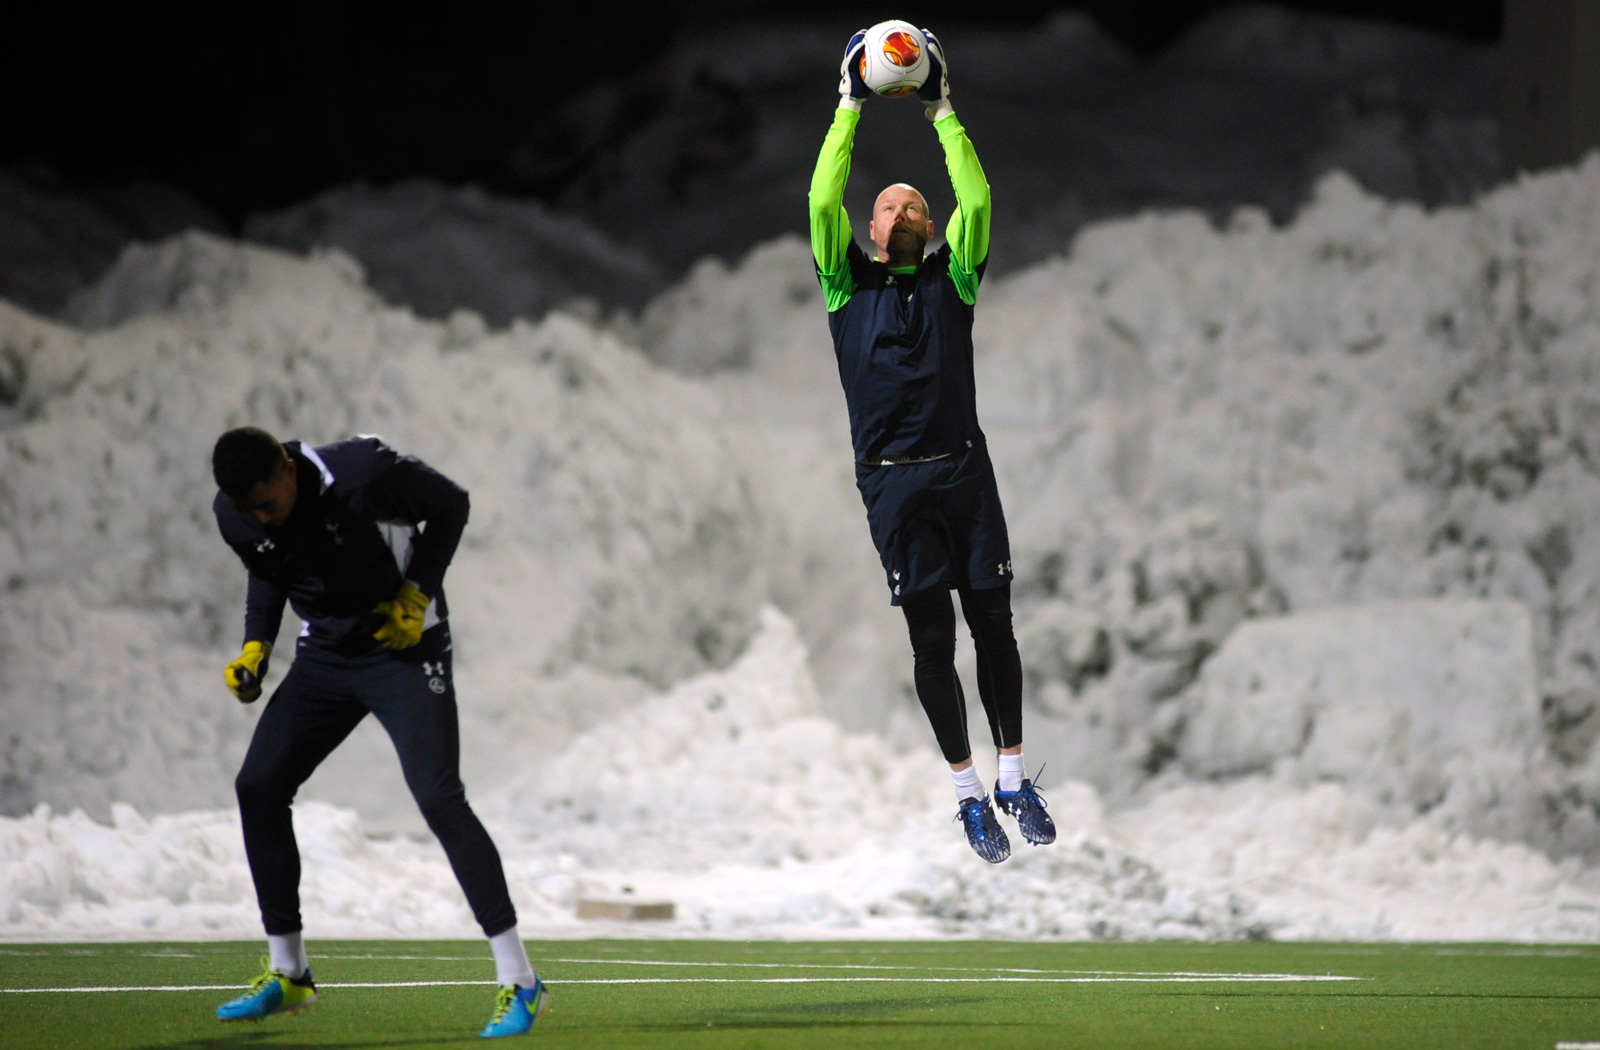 Former USA and Tottenham goalkeeper Brad Friedel warms up before a Europa League game in Norway in November 2013.